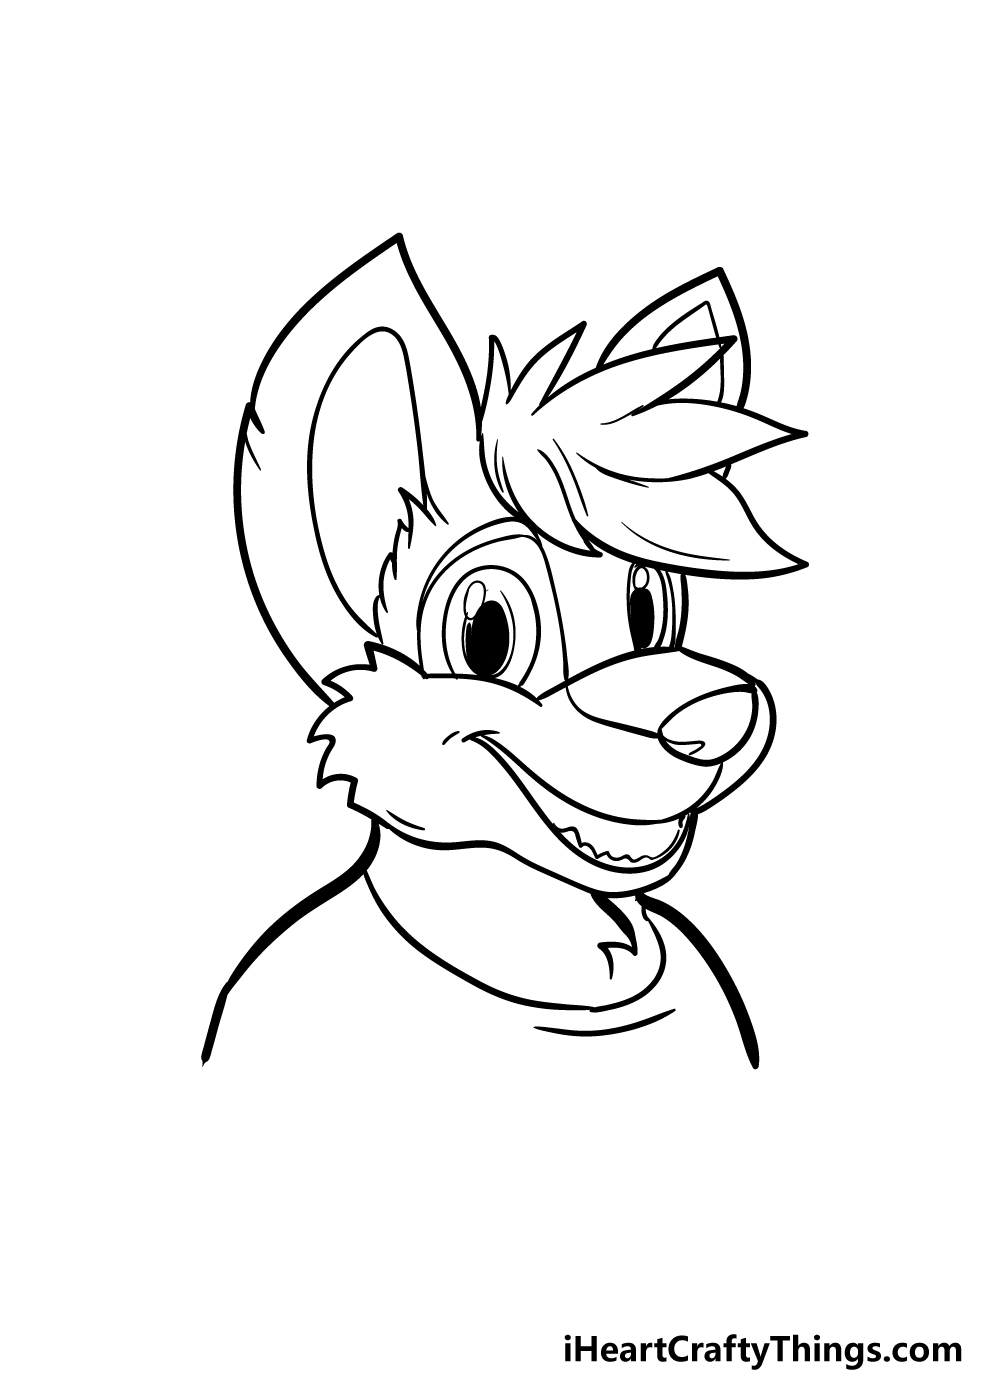 furry drawing step 6